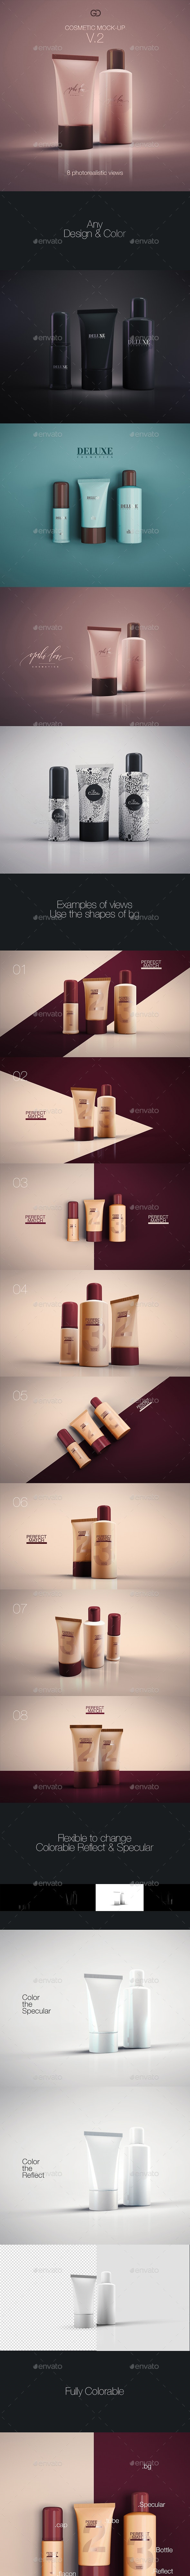 Cosmetic Mock-up 2 - Beauty Packaging